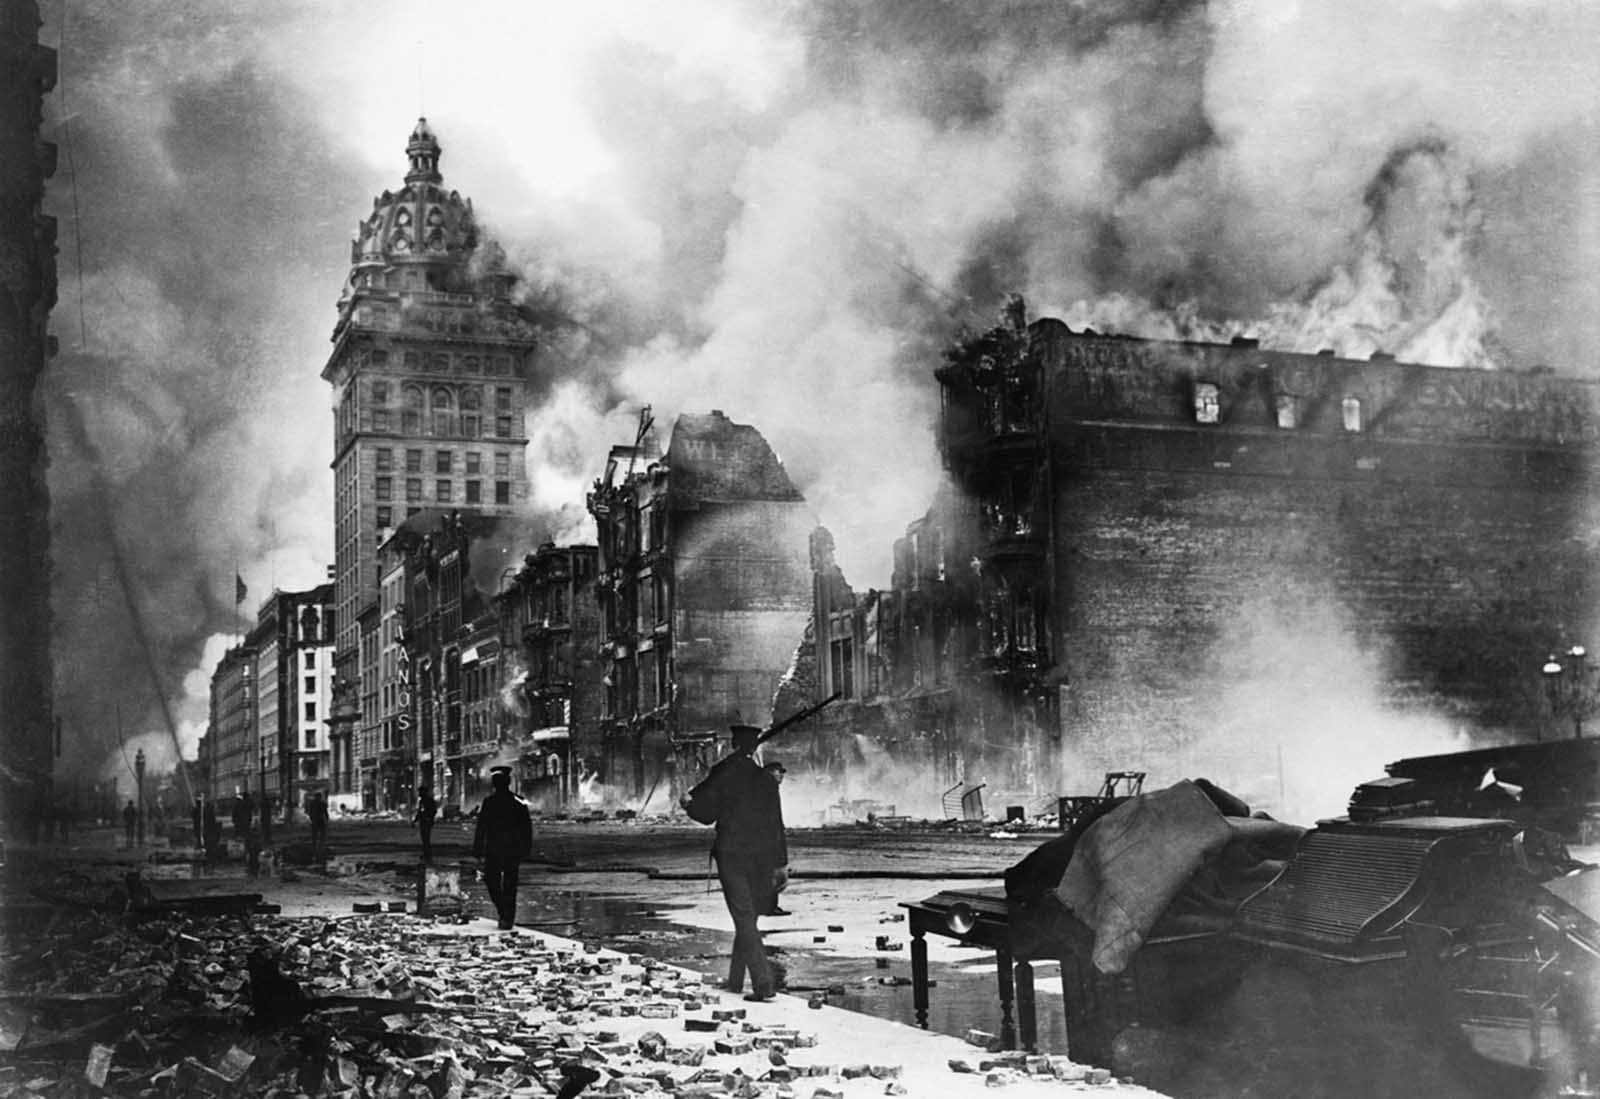 Troops walk east along Market Street after the devastating earthquake of 1906. The Call building burns in the distance